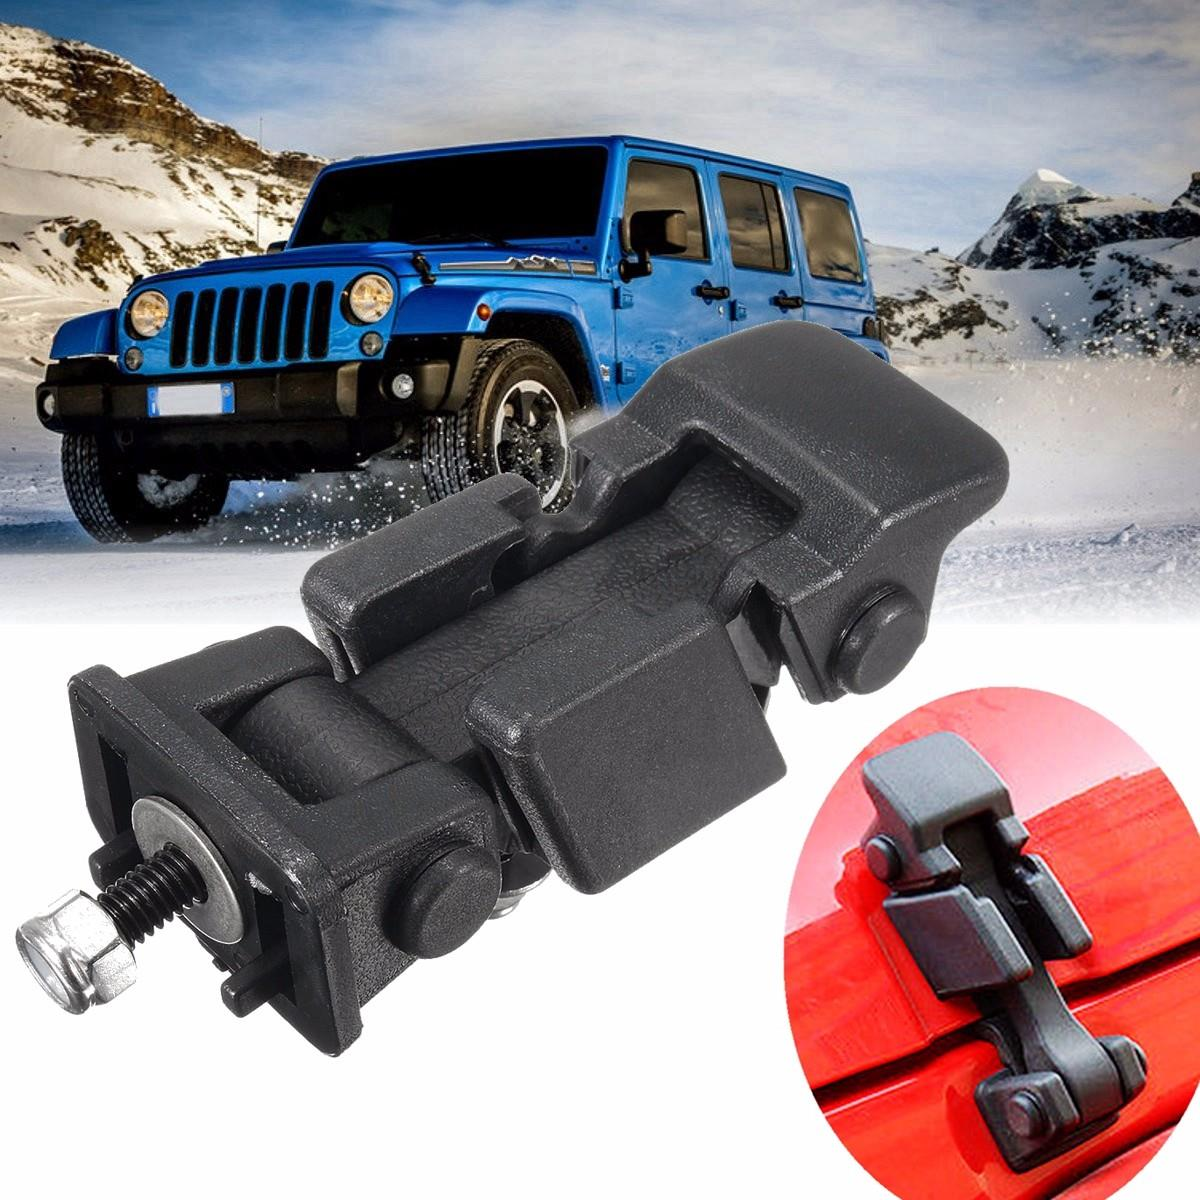 New Pair Hood Latch Catch /& Bracket for Jeep Wrangler JK 2007-2016 2pcs Set